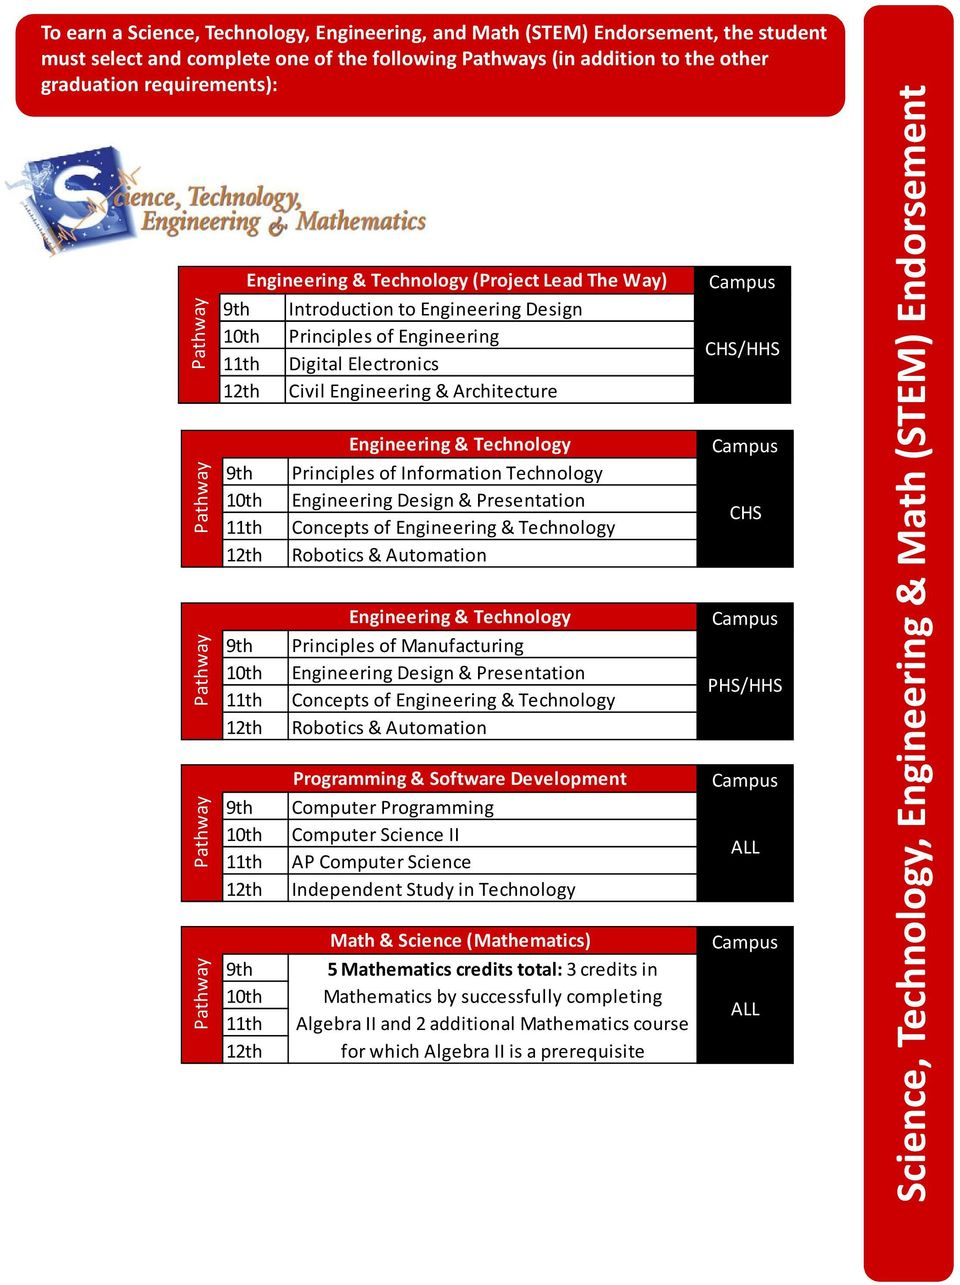 Principles of Information Technology 10th Engineering Design & Presentation 11th Concepts of Engineering & Technology 12th Robotics & Automation Engineering & Technology 9th Principles of